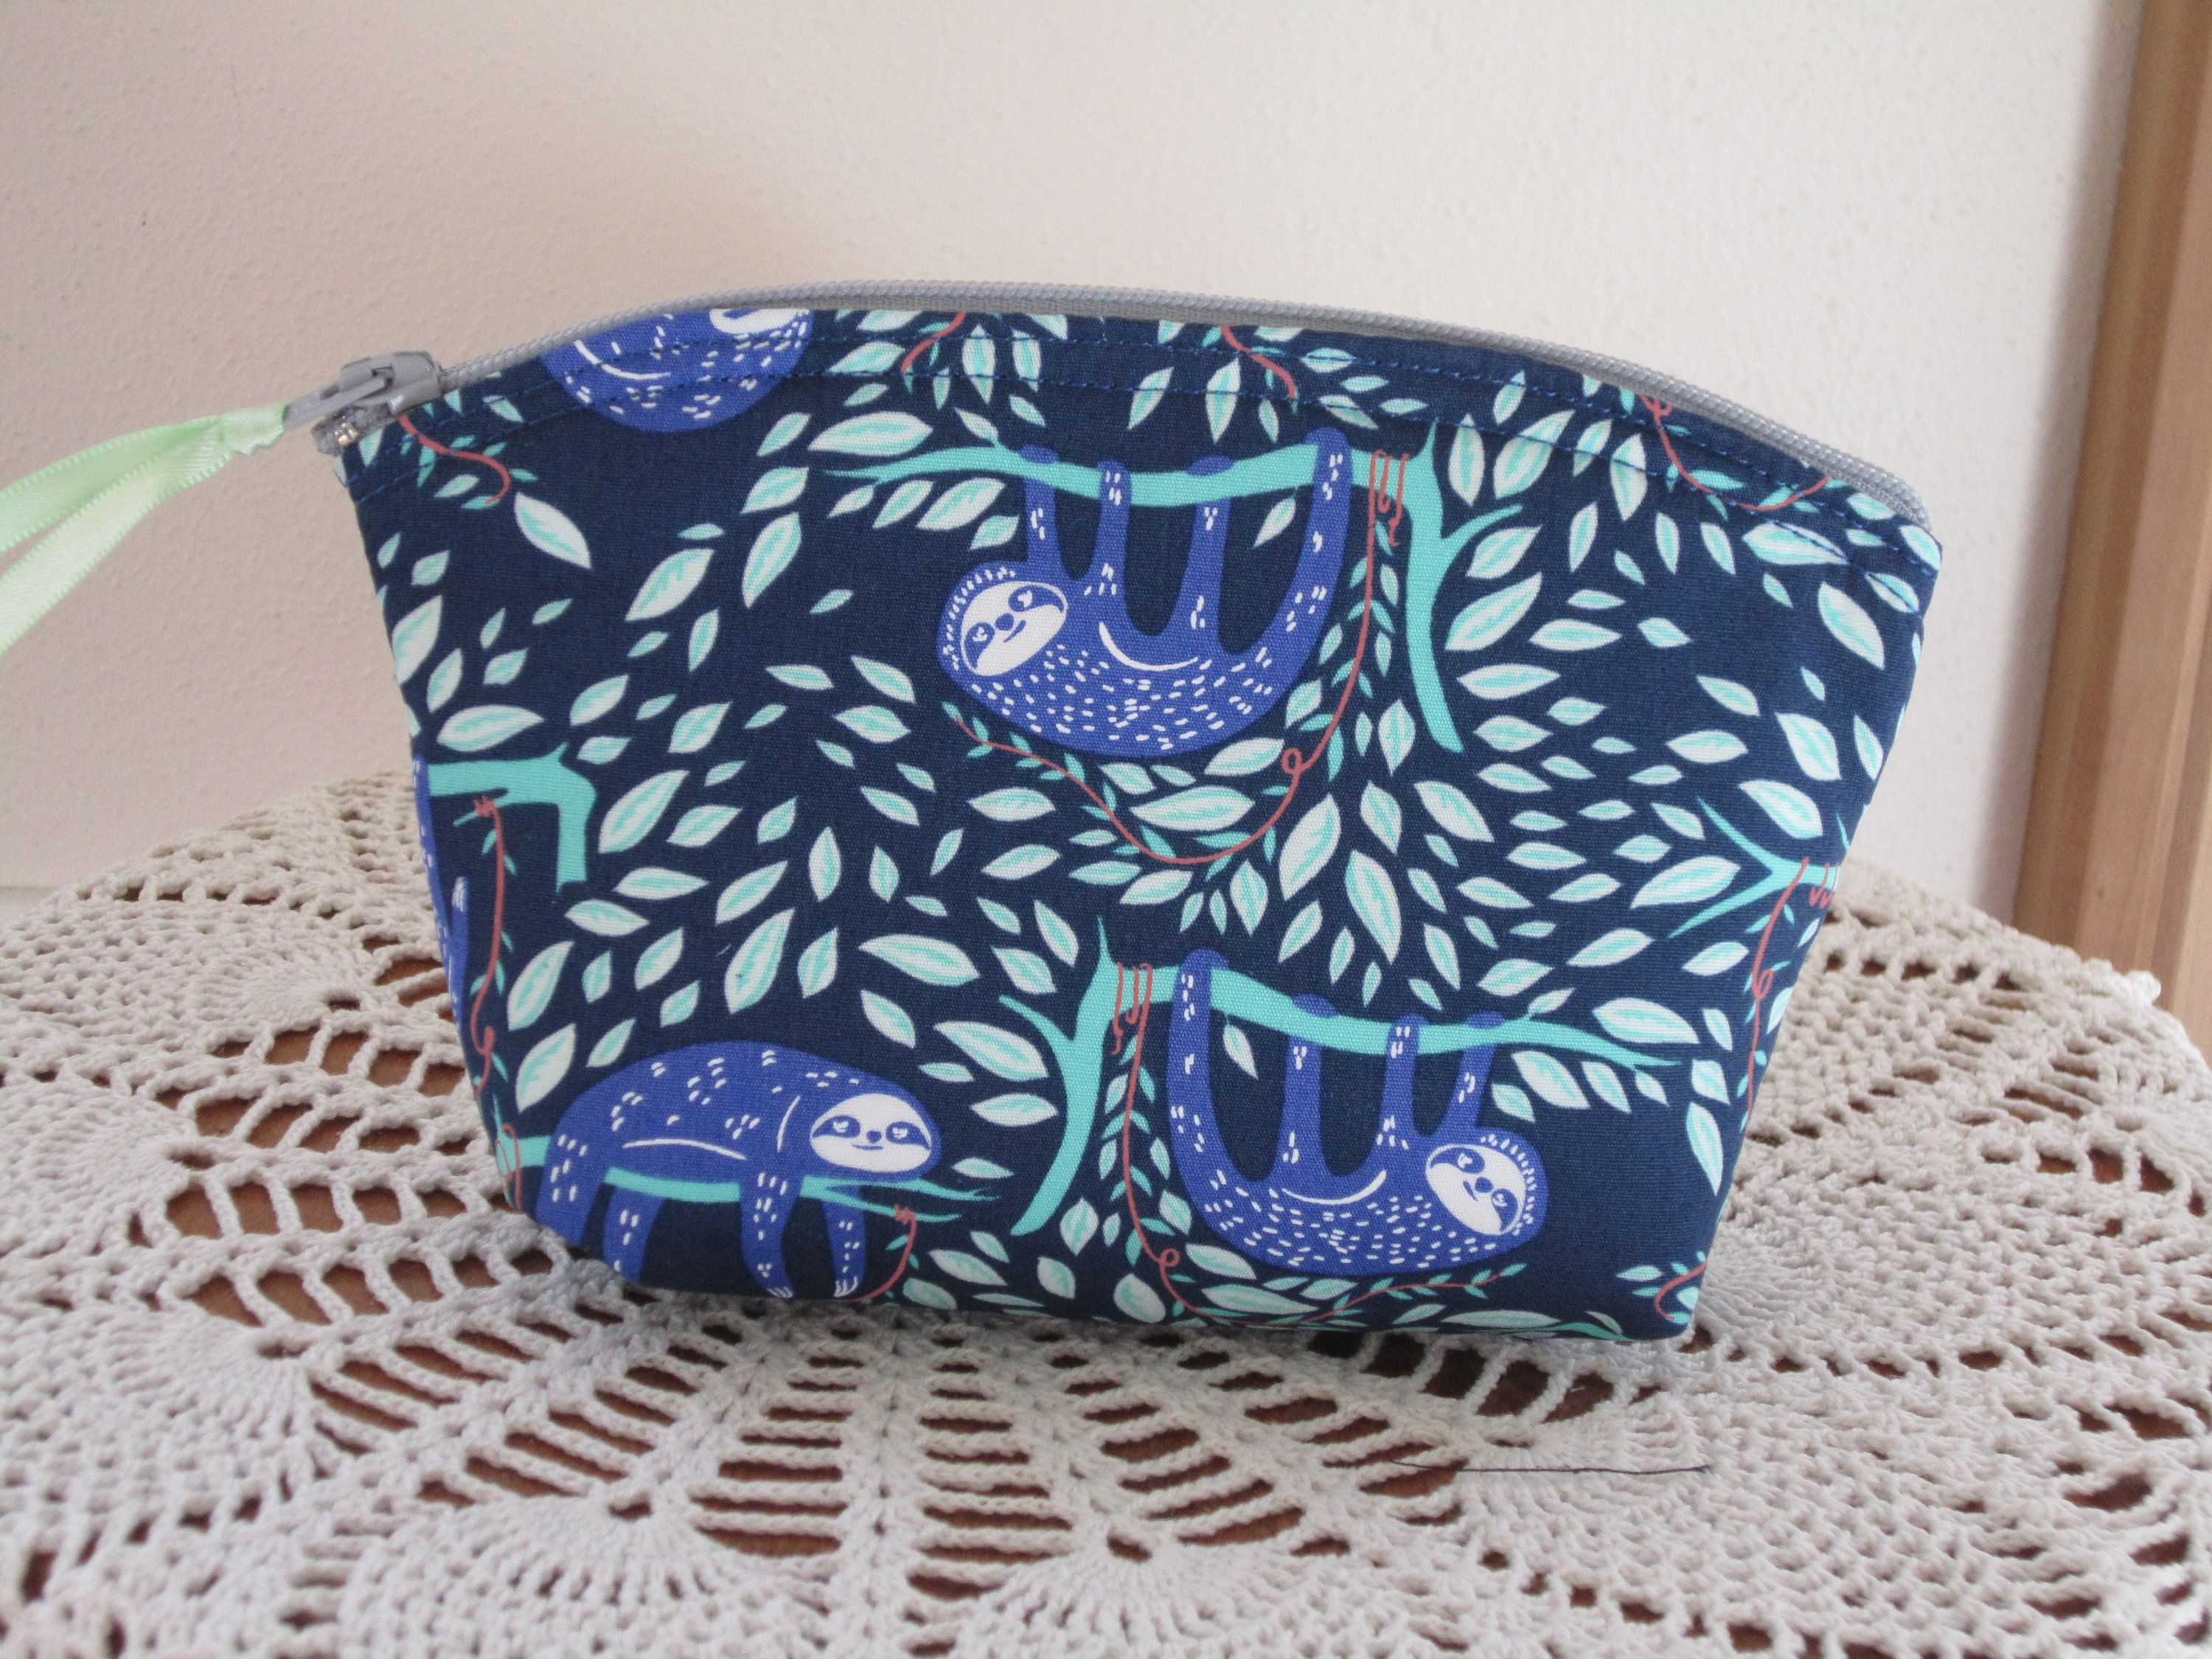 Sloth Pouch Essential Oil Case Sloth Cosmetic Bag Clutch